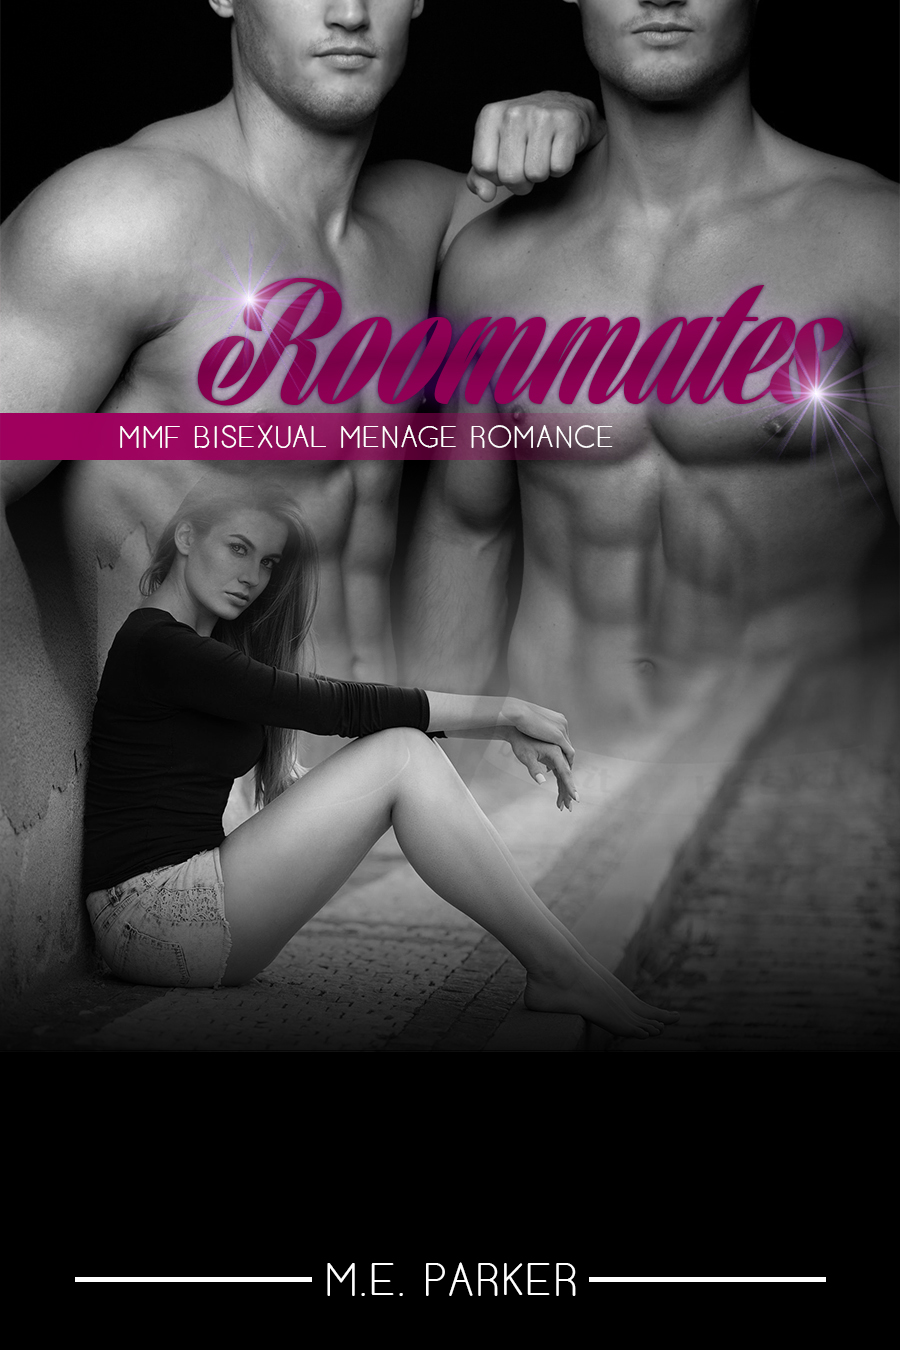 Review: Roommates by M.E. Parker